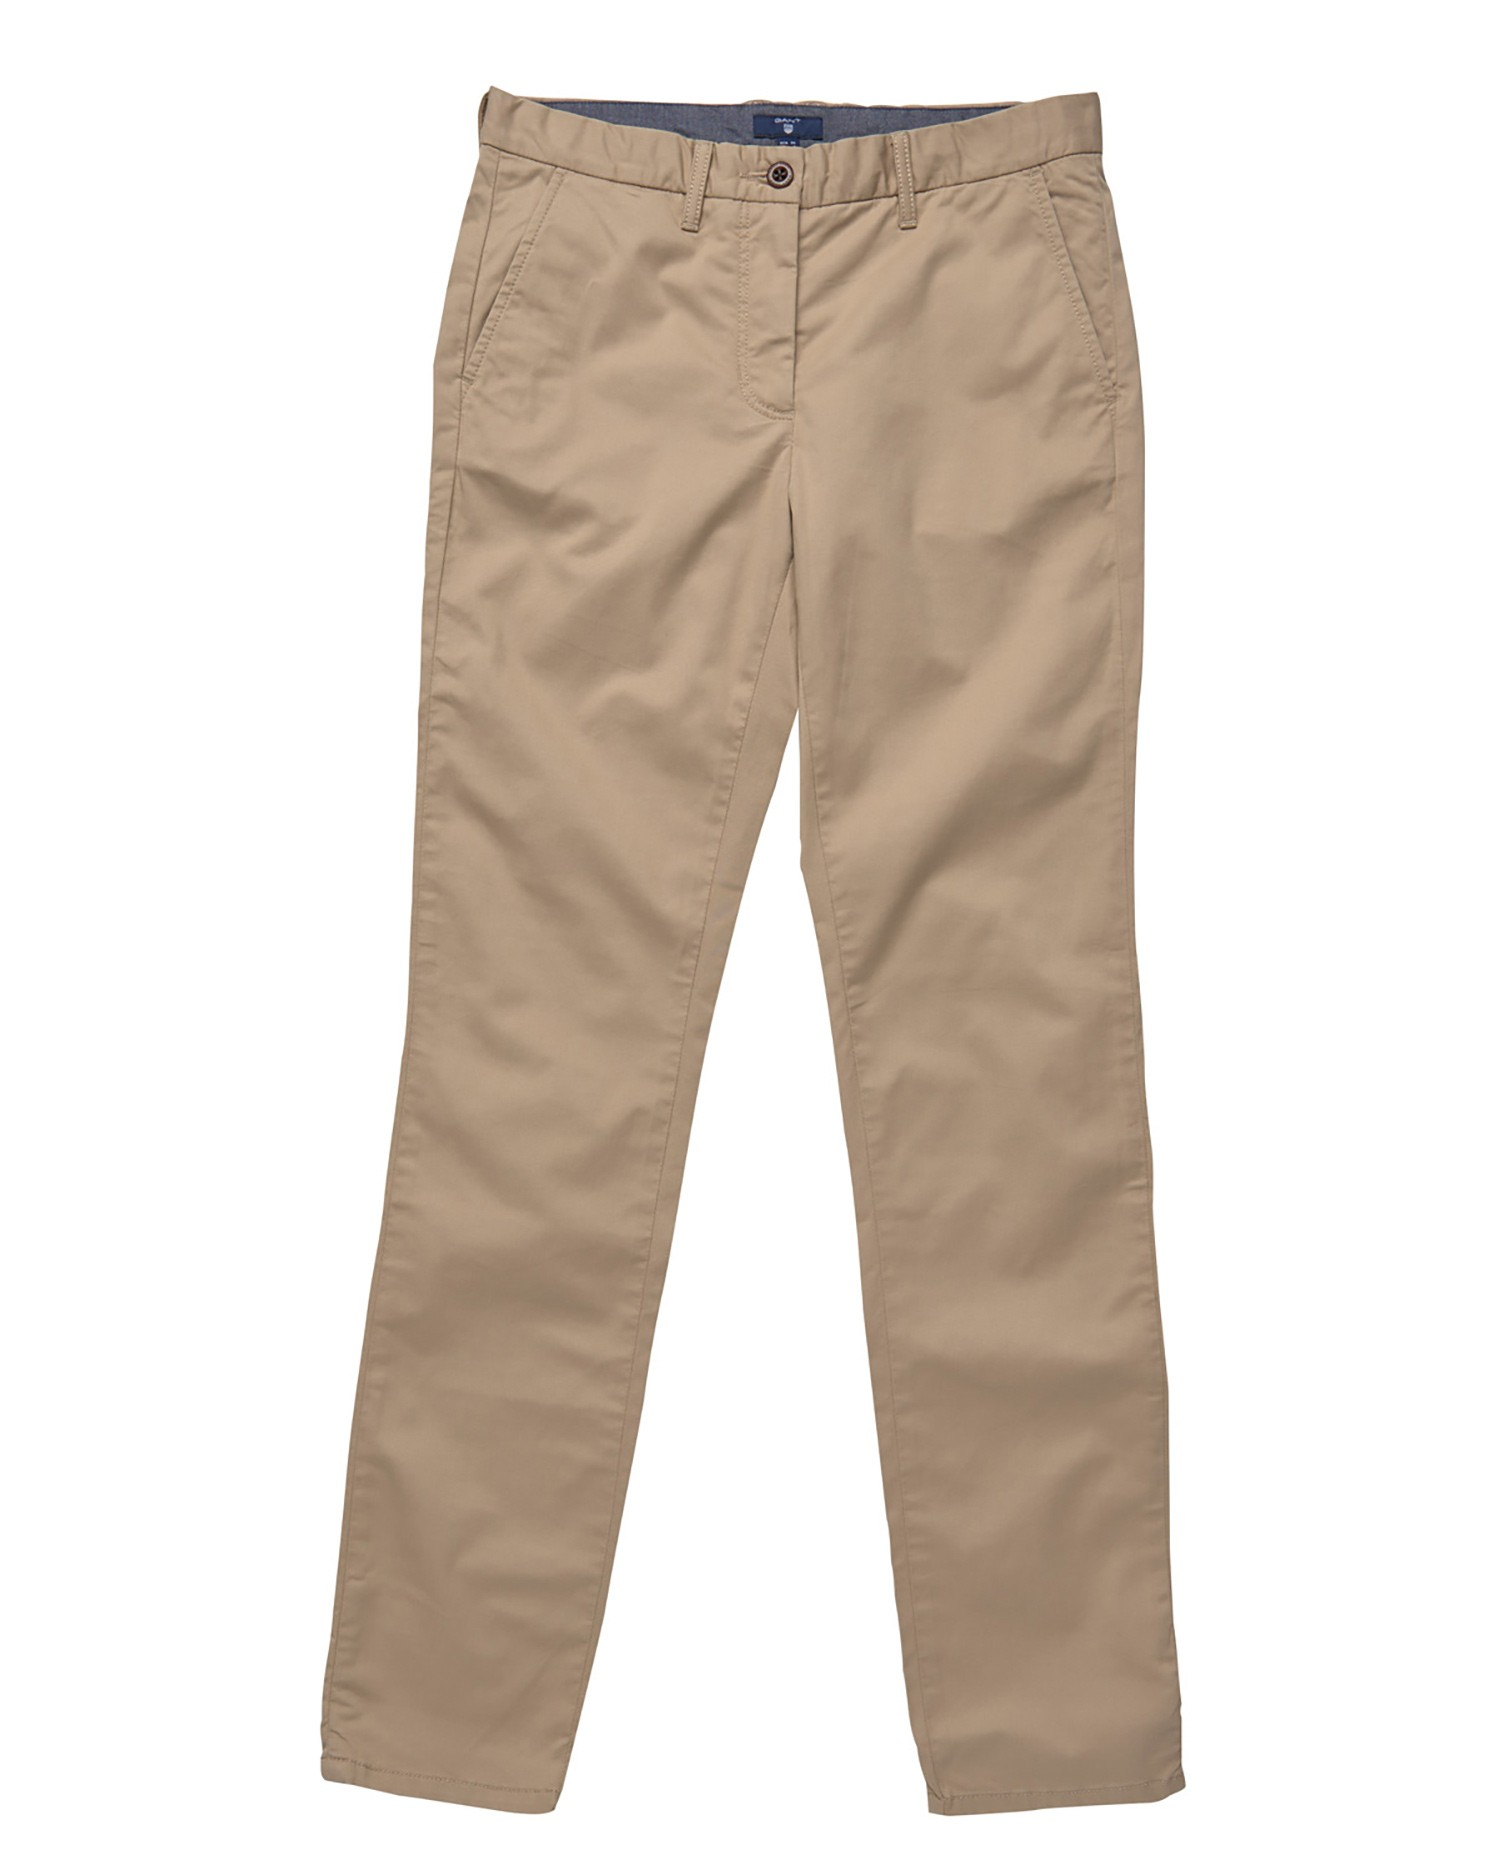 Gant Women Trousers - 4150001